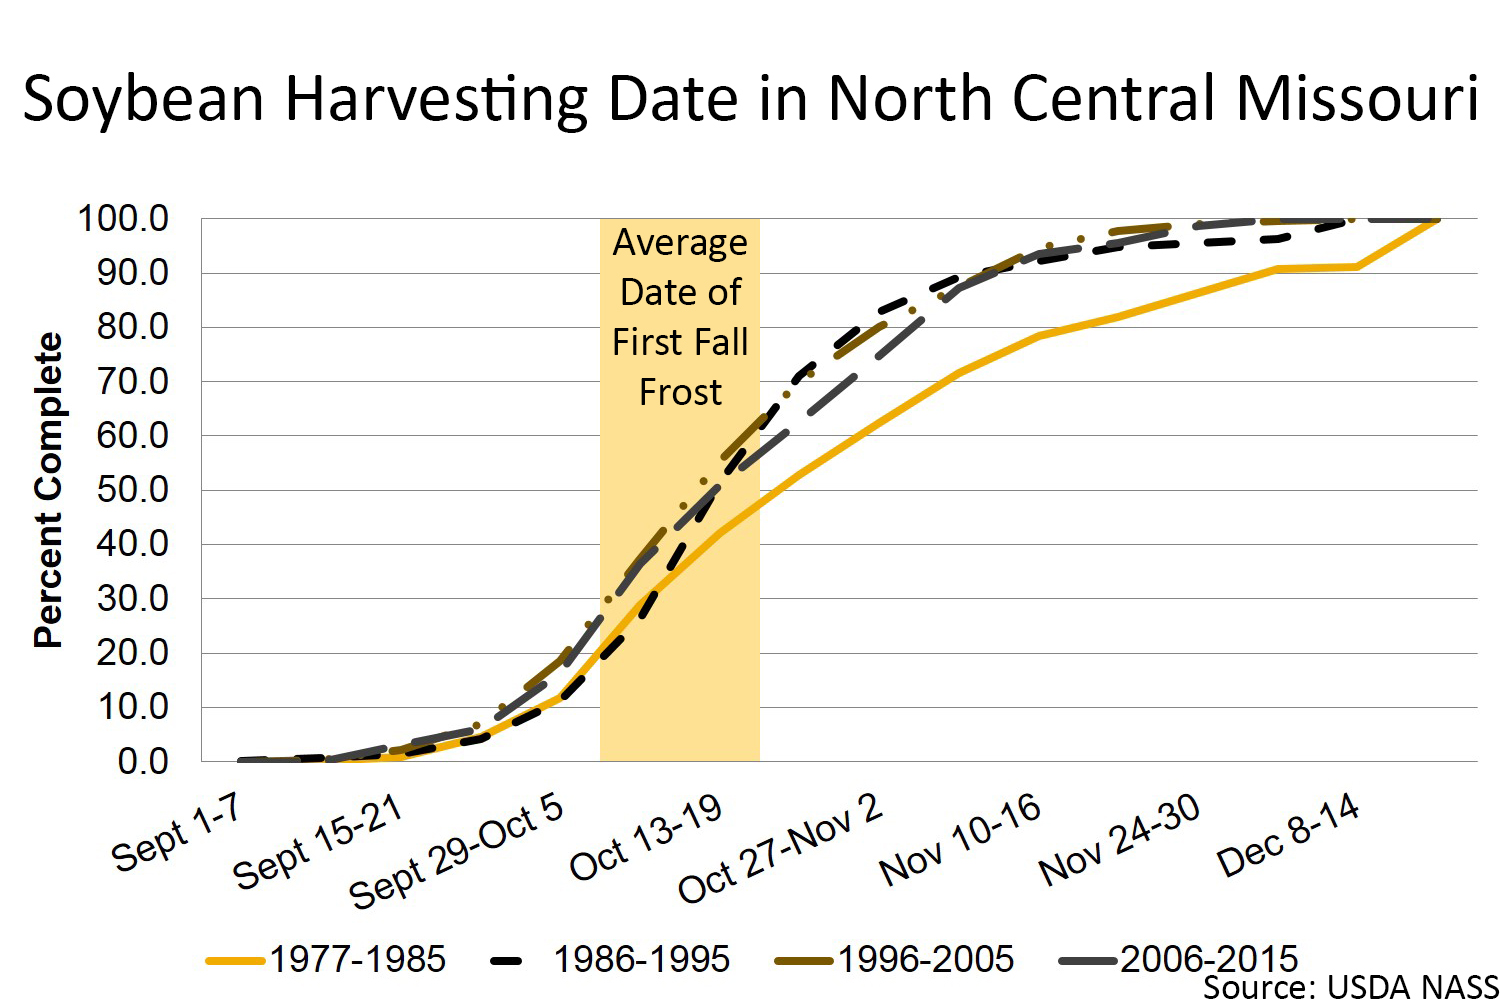 Soybean harvestng date in north central Missouri chart